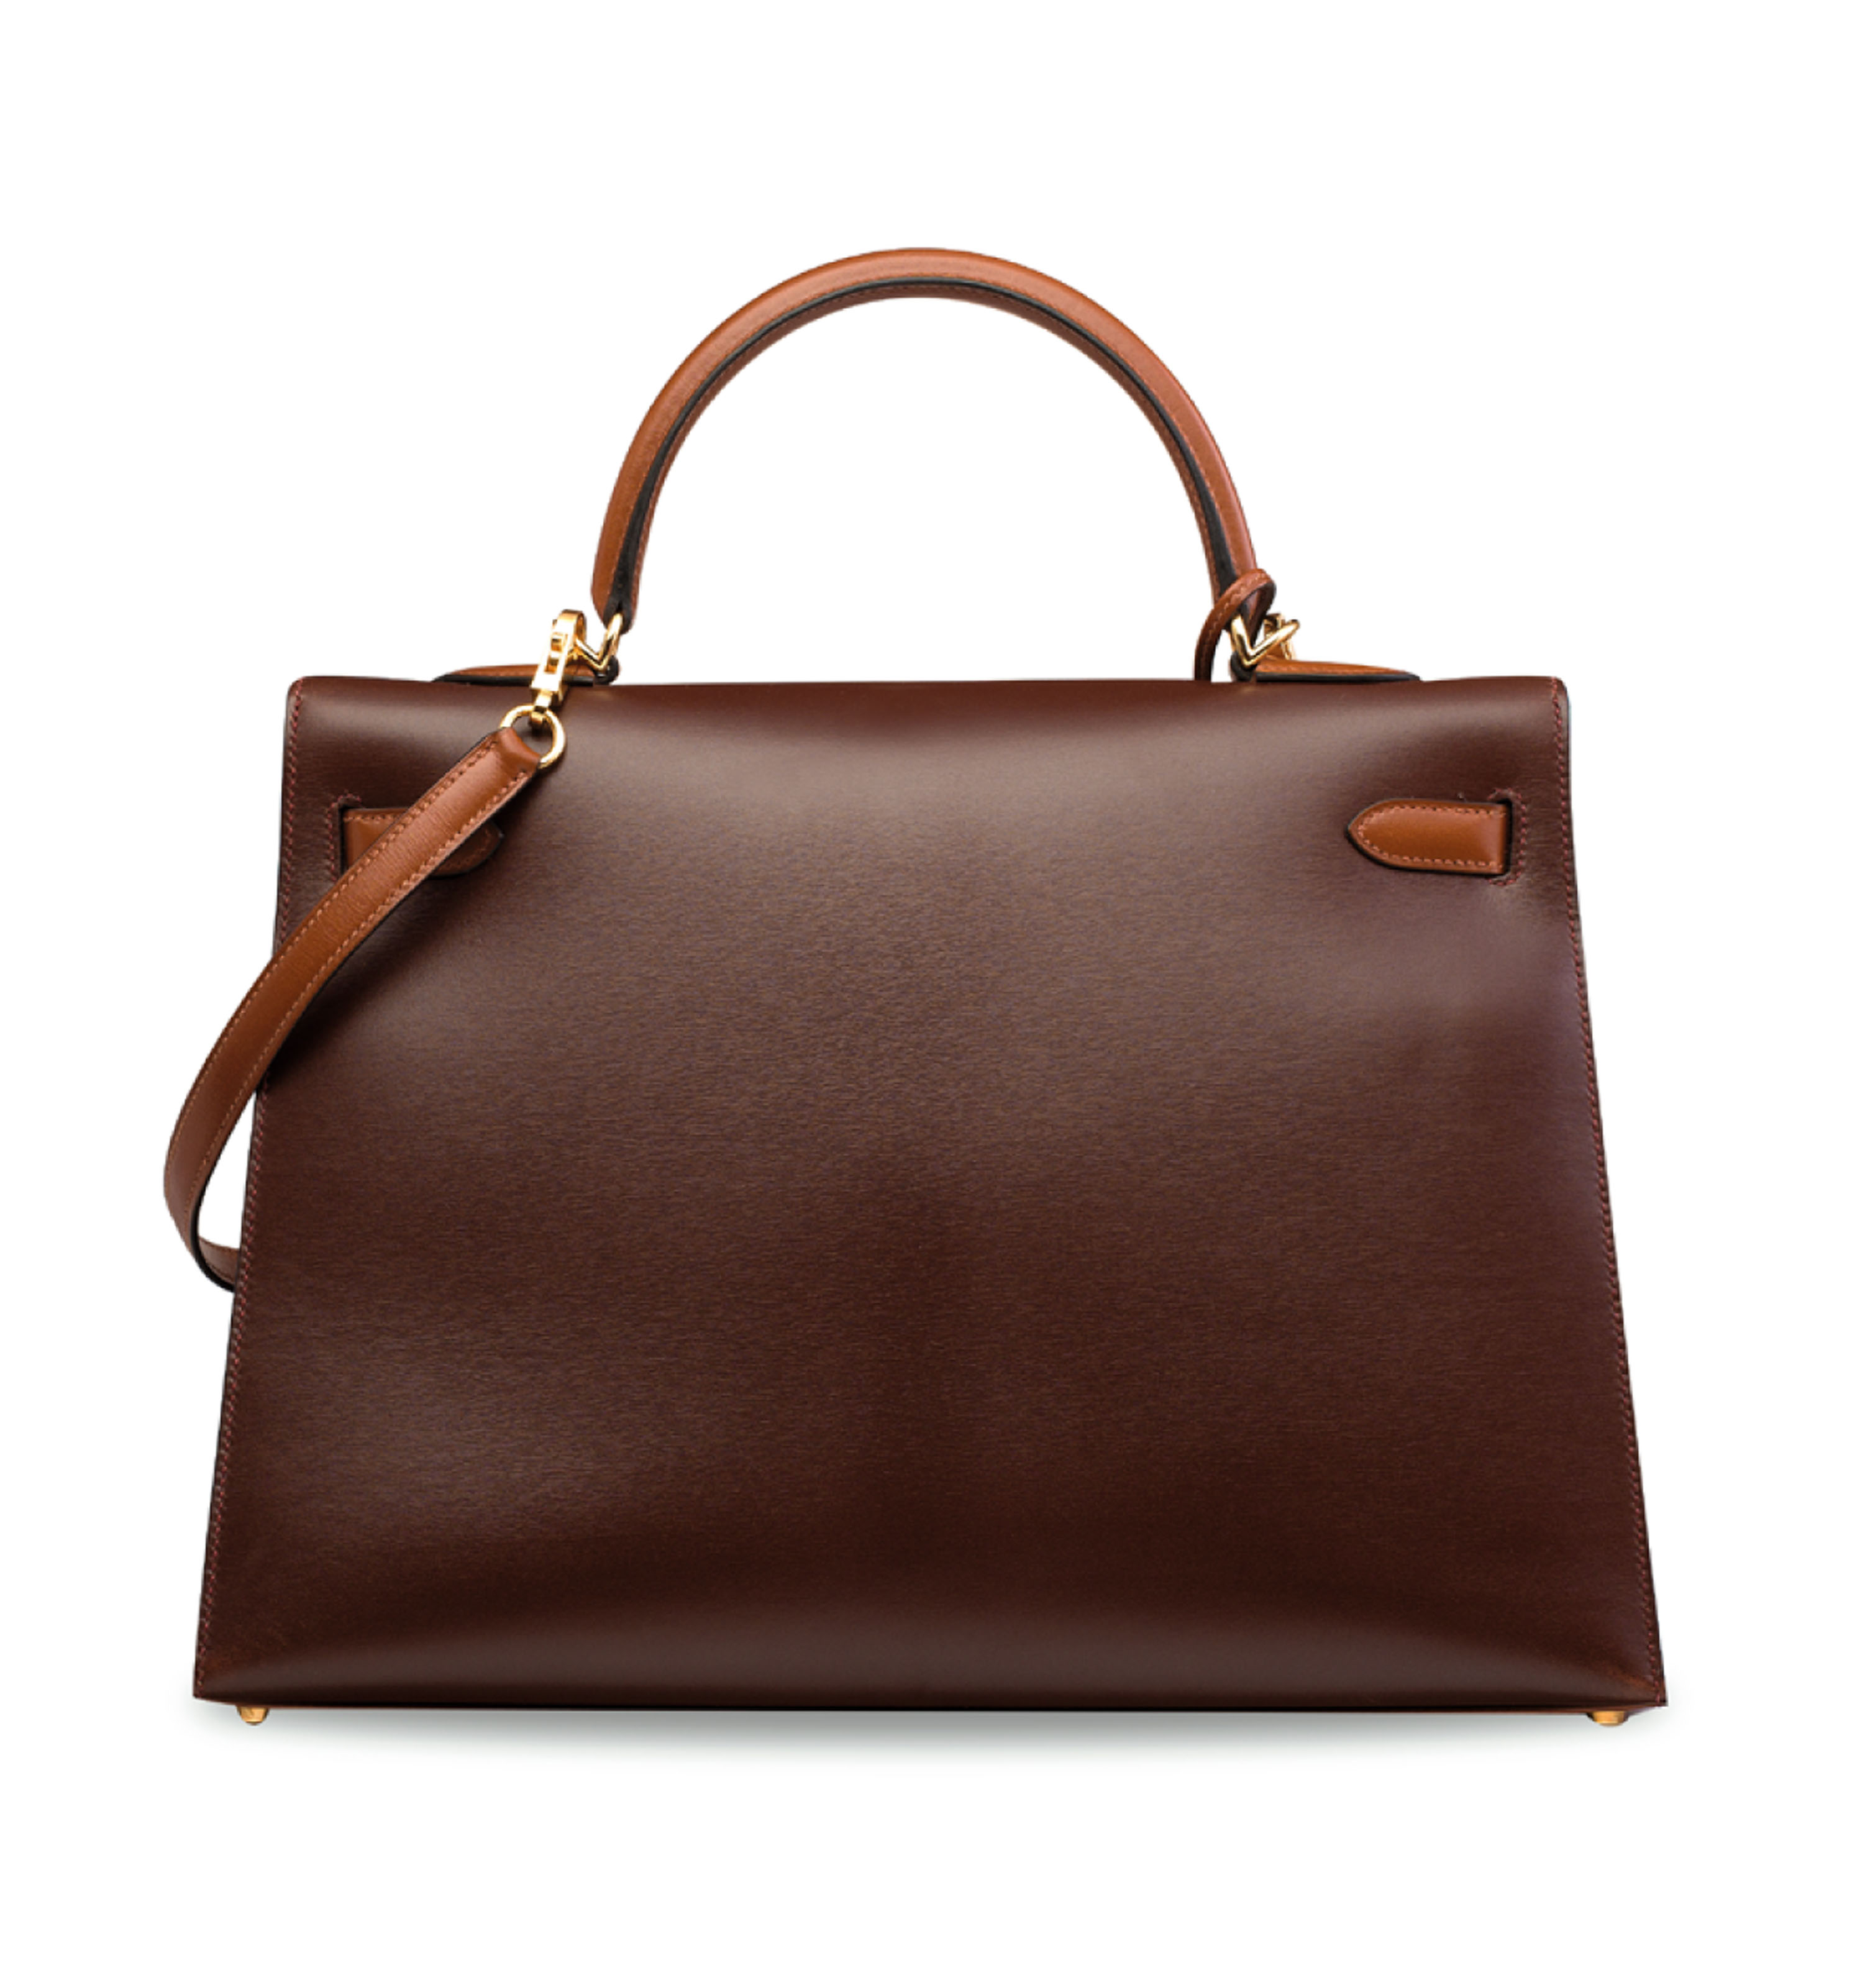 A ROUGE H, CHOCOLATE & NOISETTE CALF BOX LEATHER SELLIER KELLY 35 WITH GOLD HARDWARE